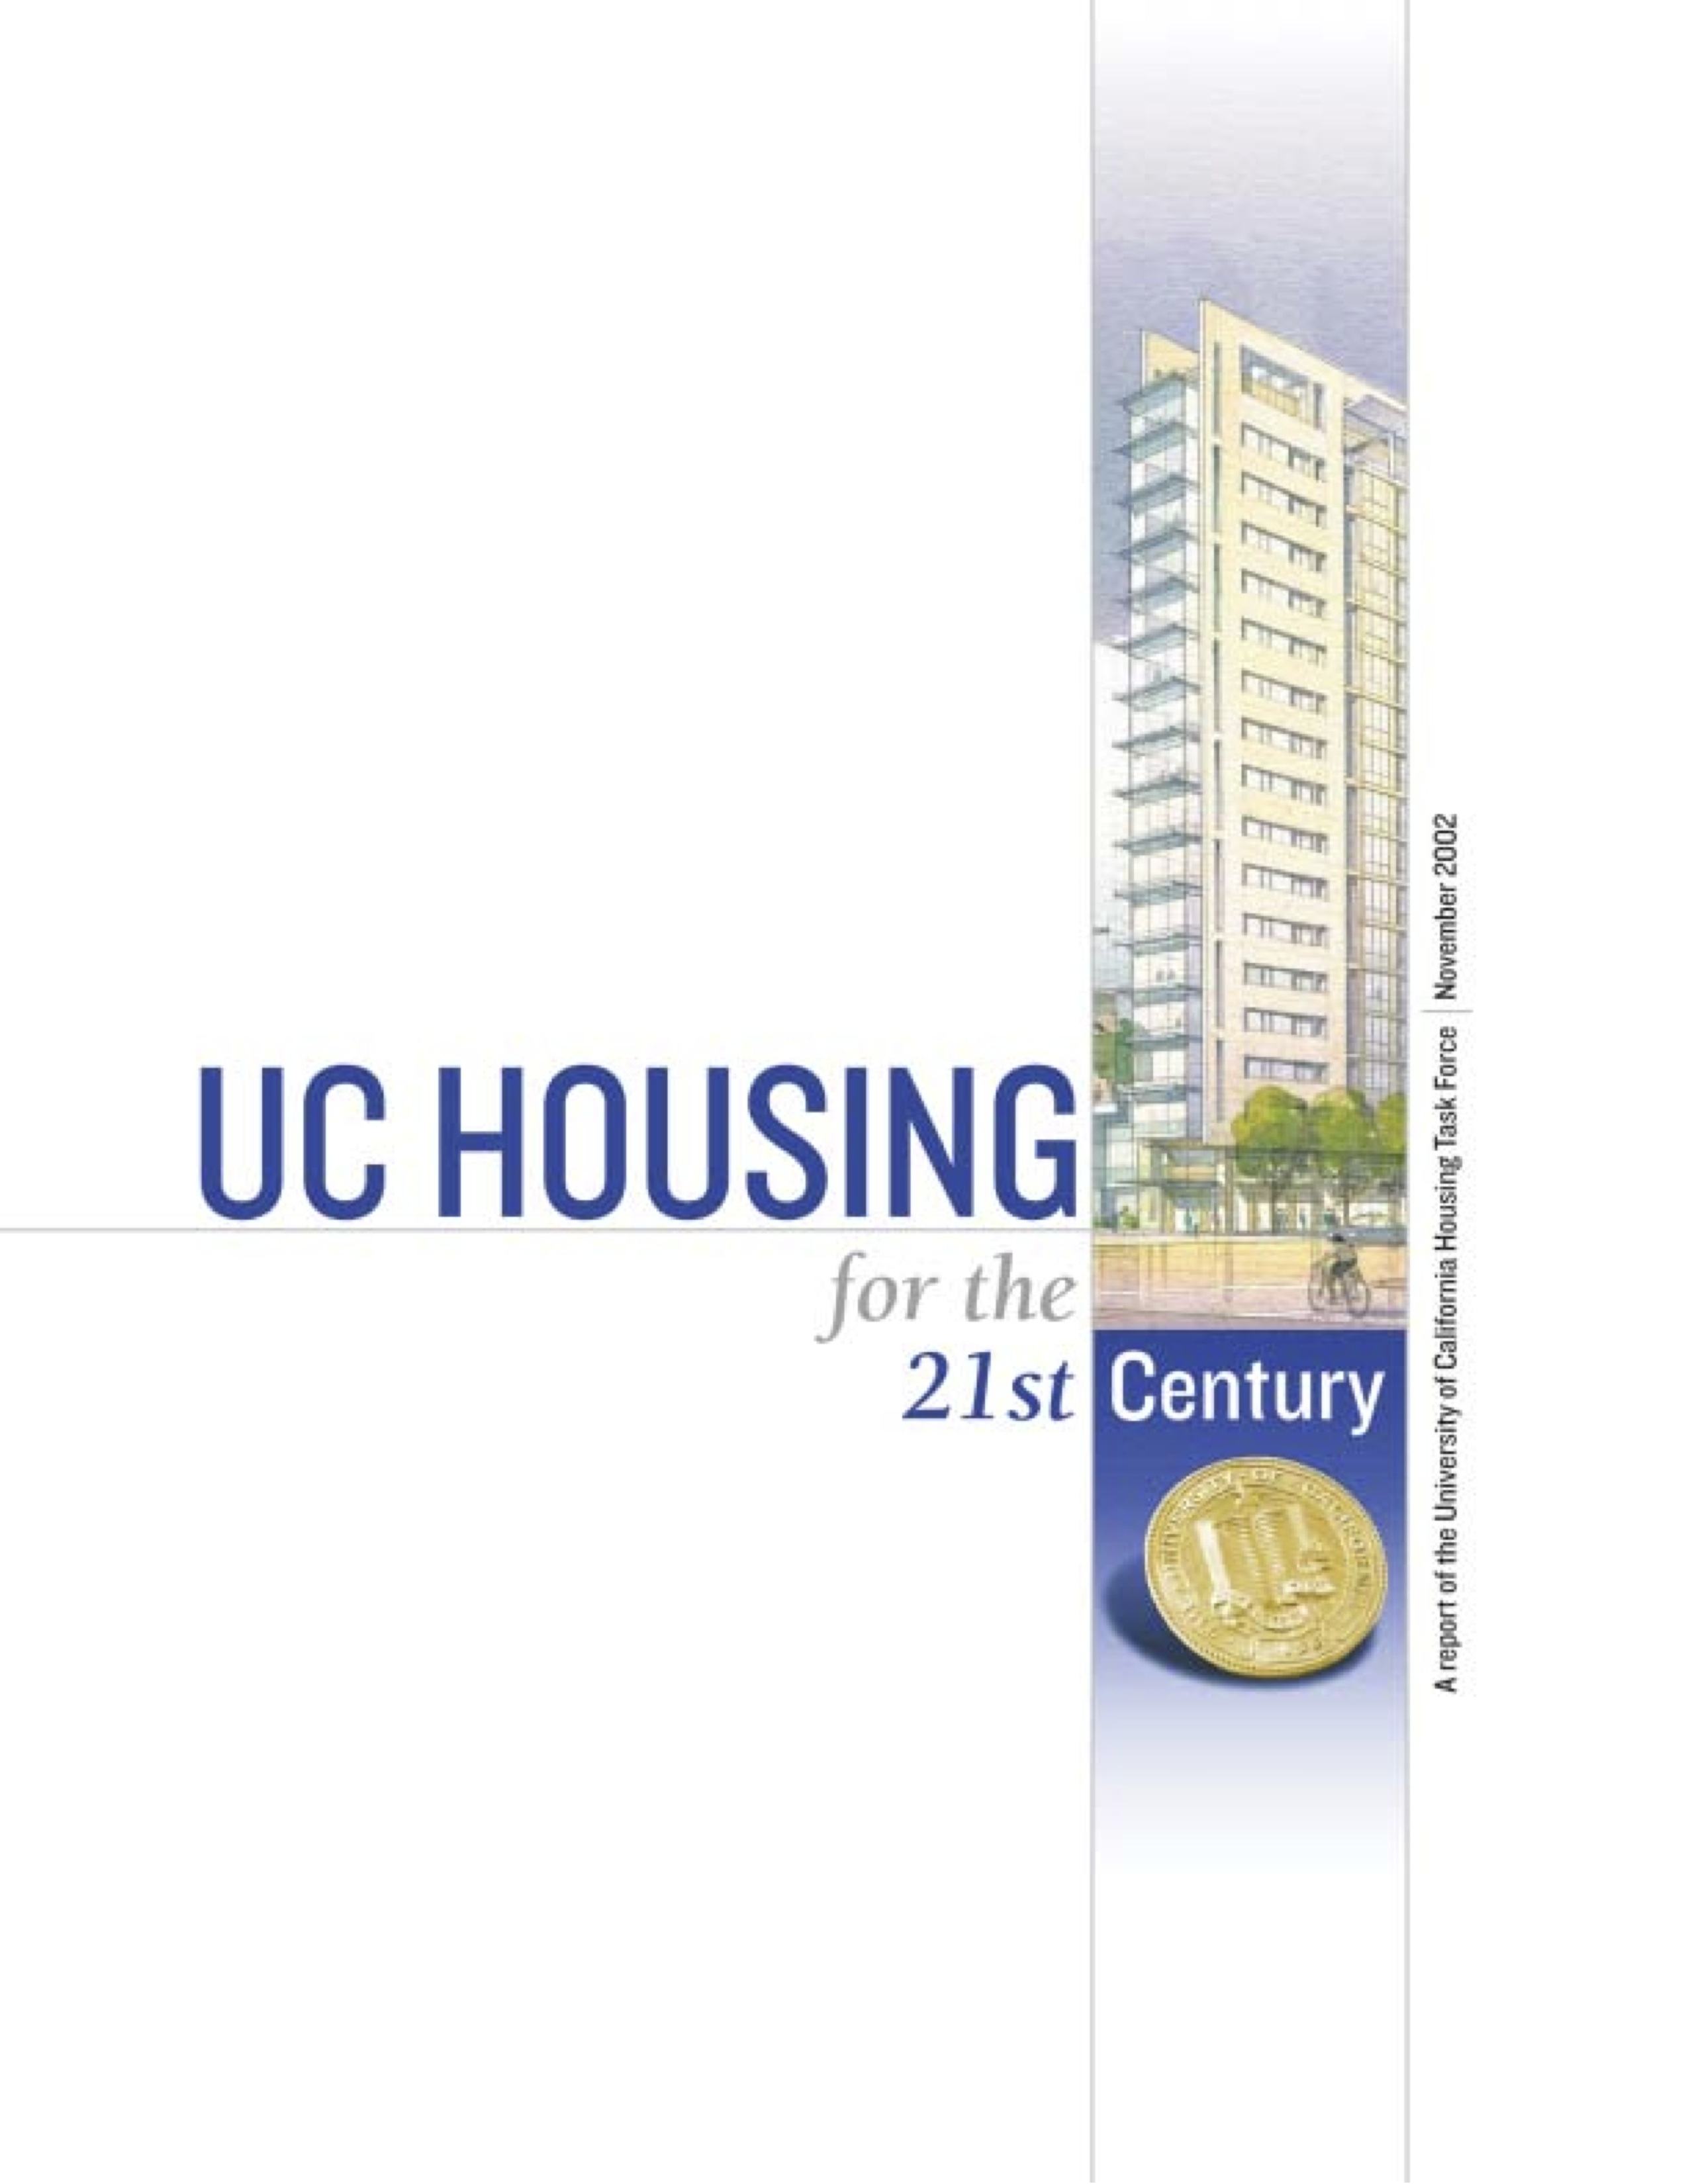 UC Housing in the 21st Century - Report Cover